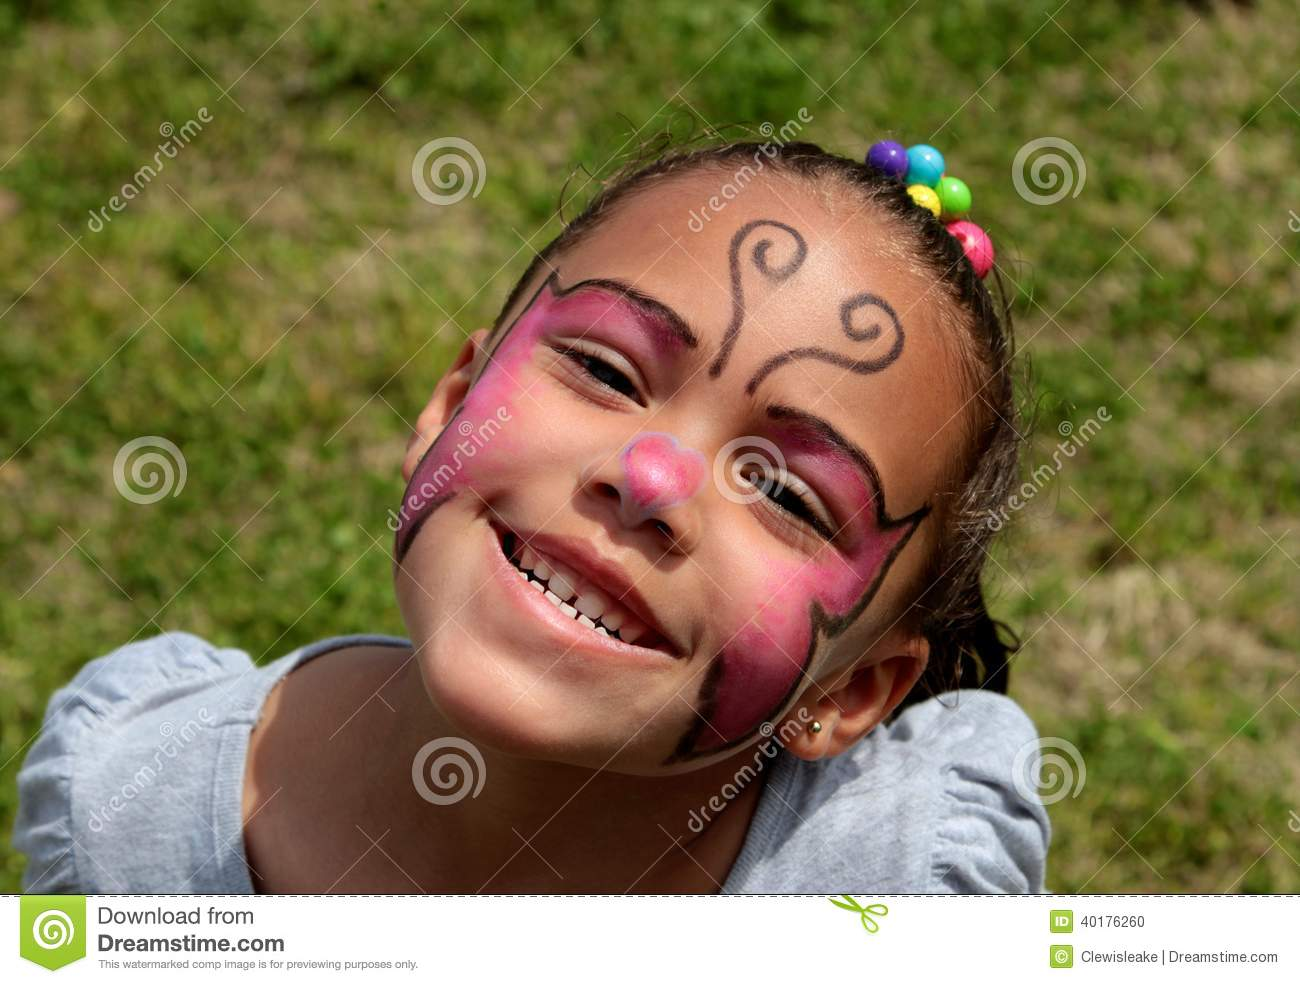 Young Girl Wearing Face Paint and Smiling Brightly